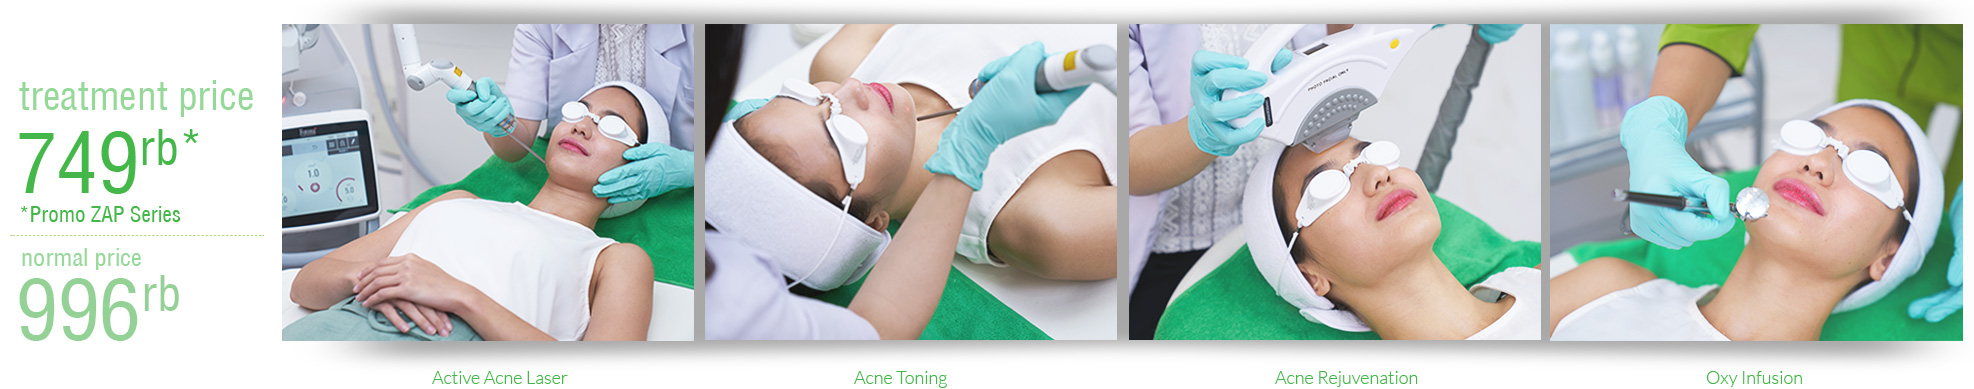 Harga Treatement Photofacial Acne